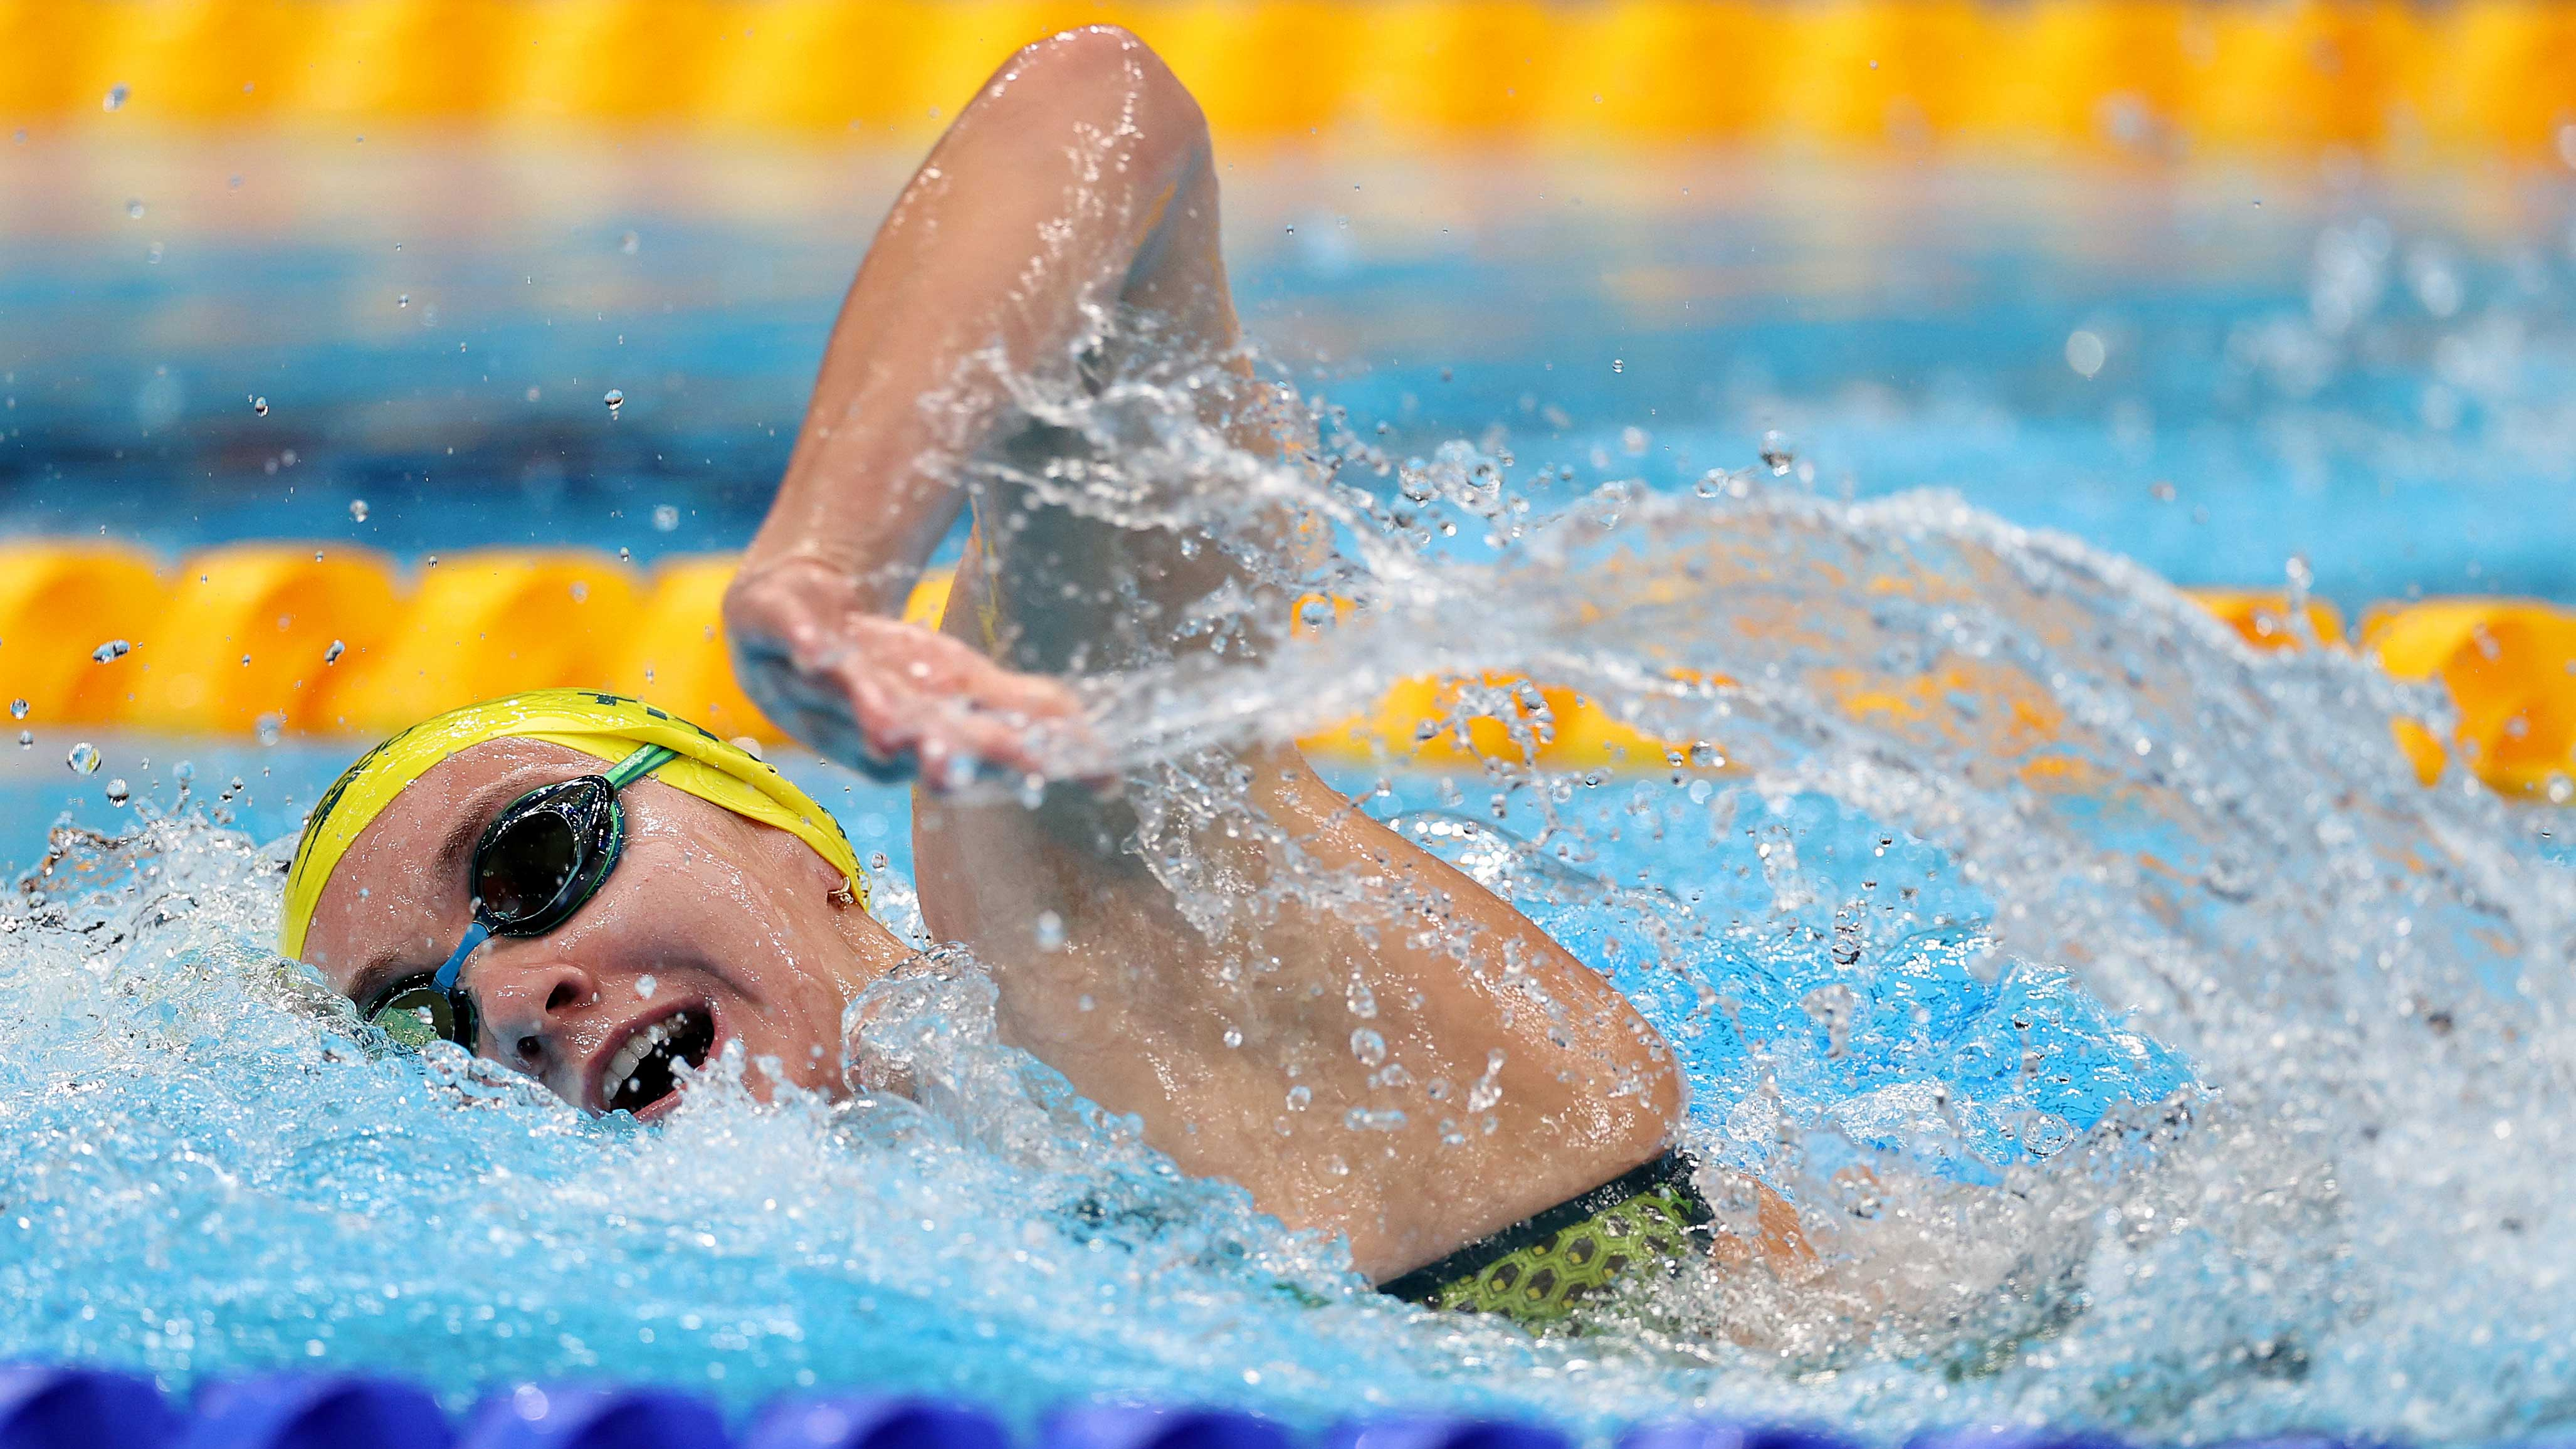 Australia's Ariarne Titmus competes in the 400m freestyle final on July 26.